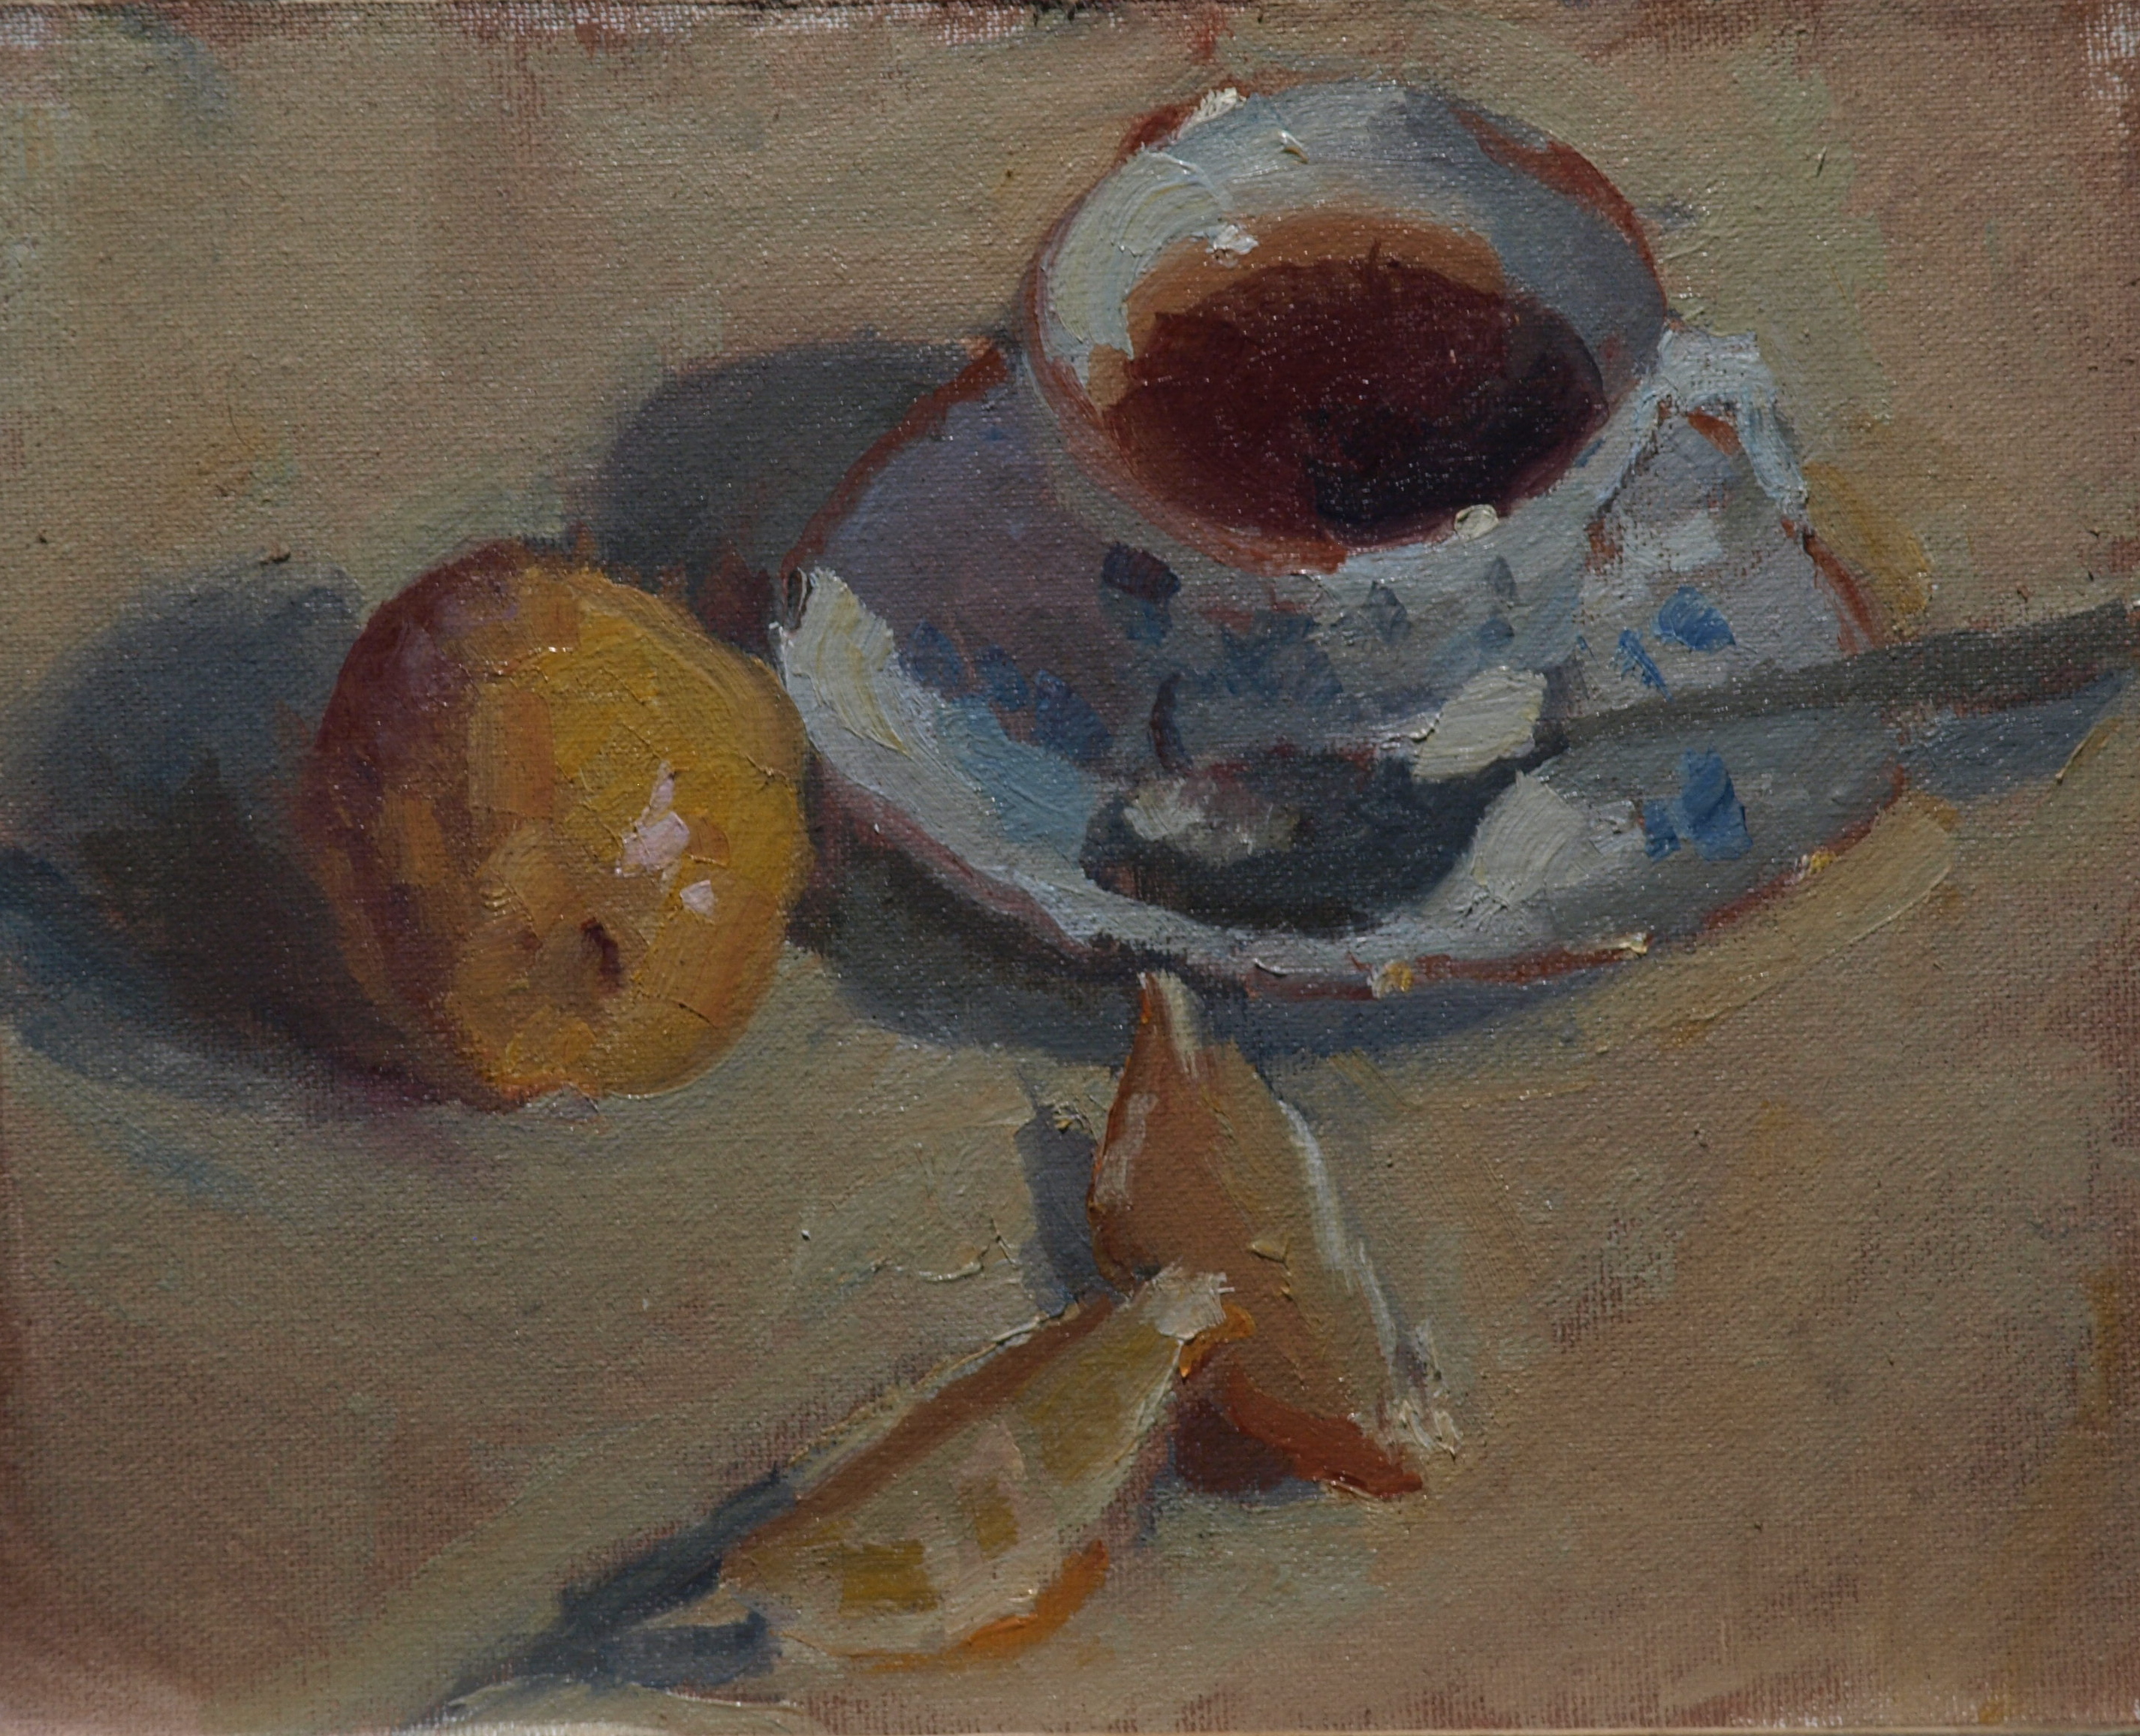 Earl Grey, Oil on Canvas on Panel, 8 x 10 Inches, by Susan Grisell, $150